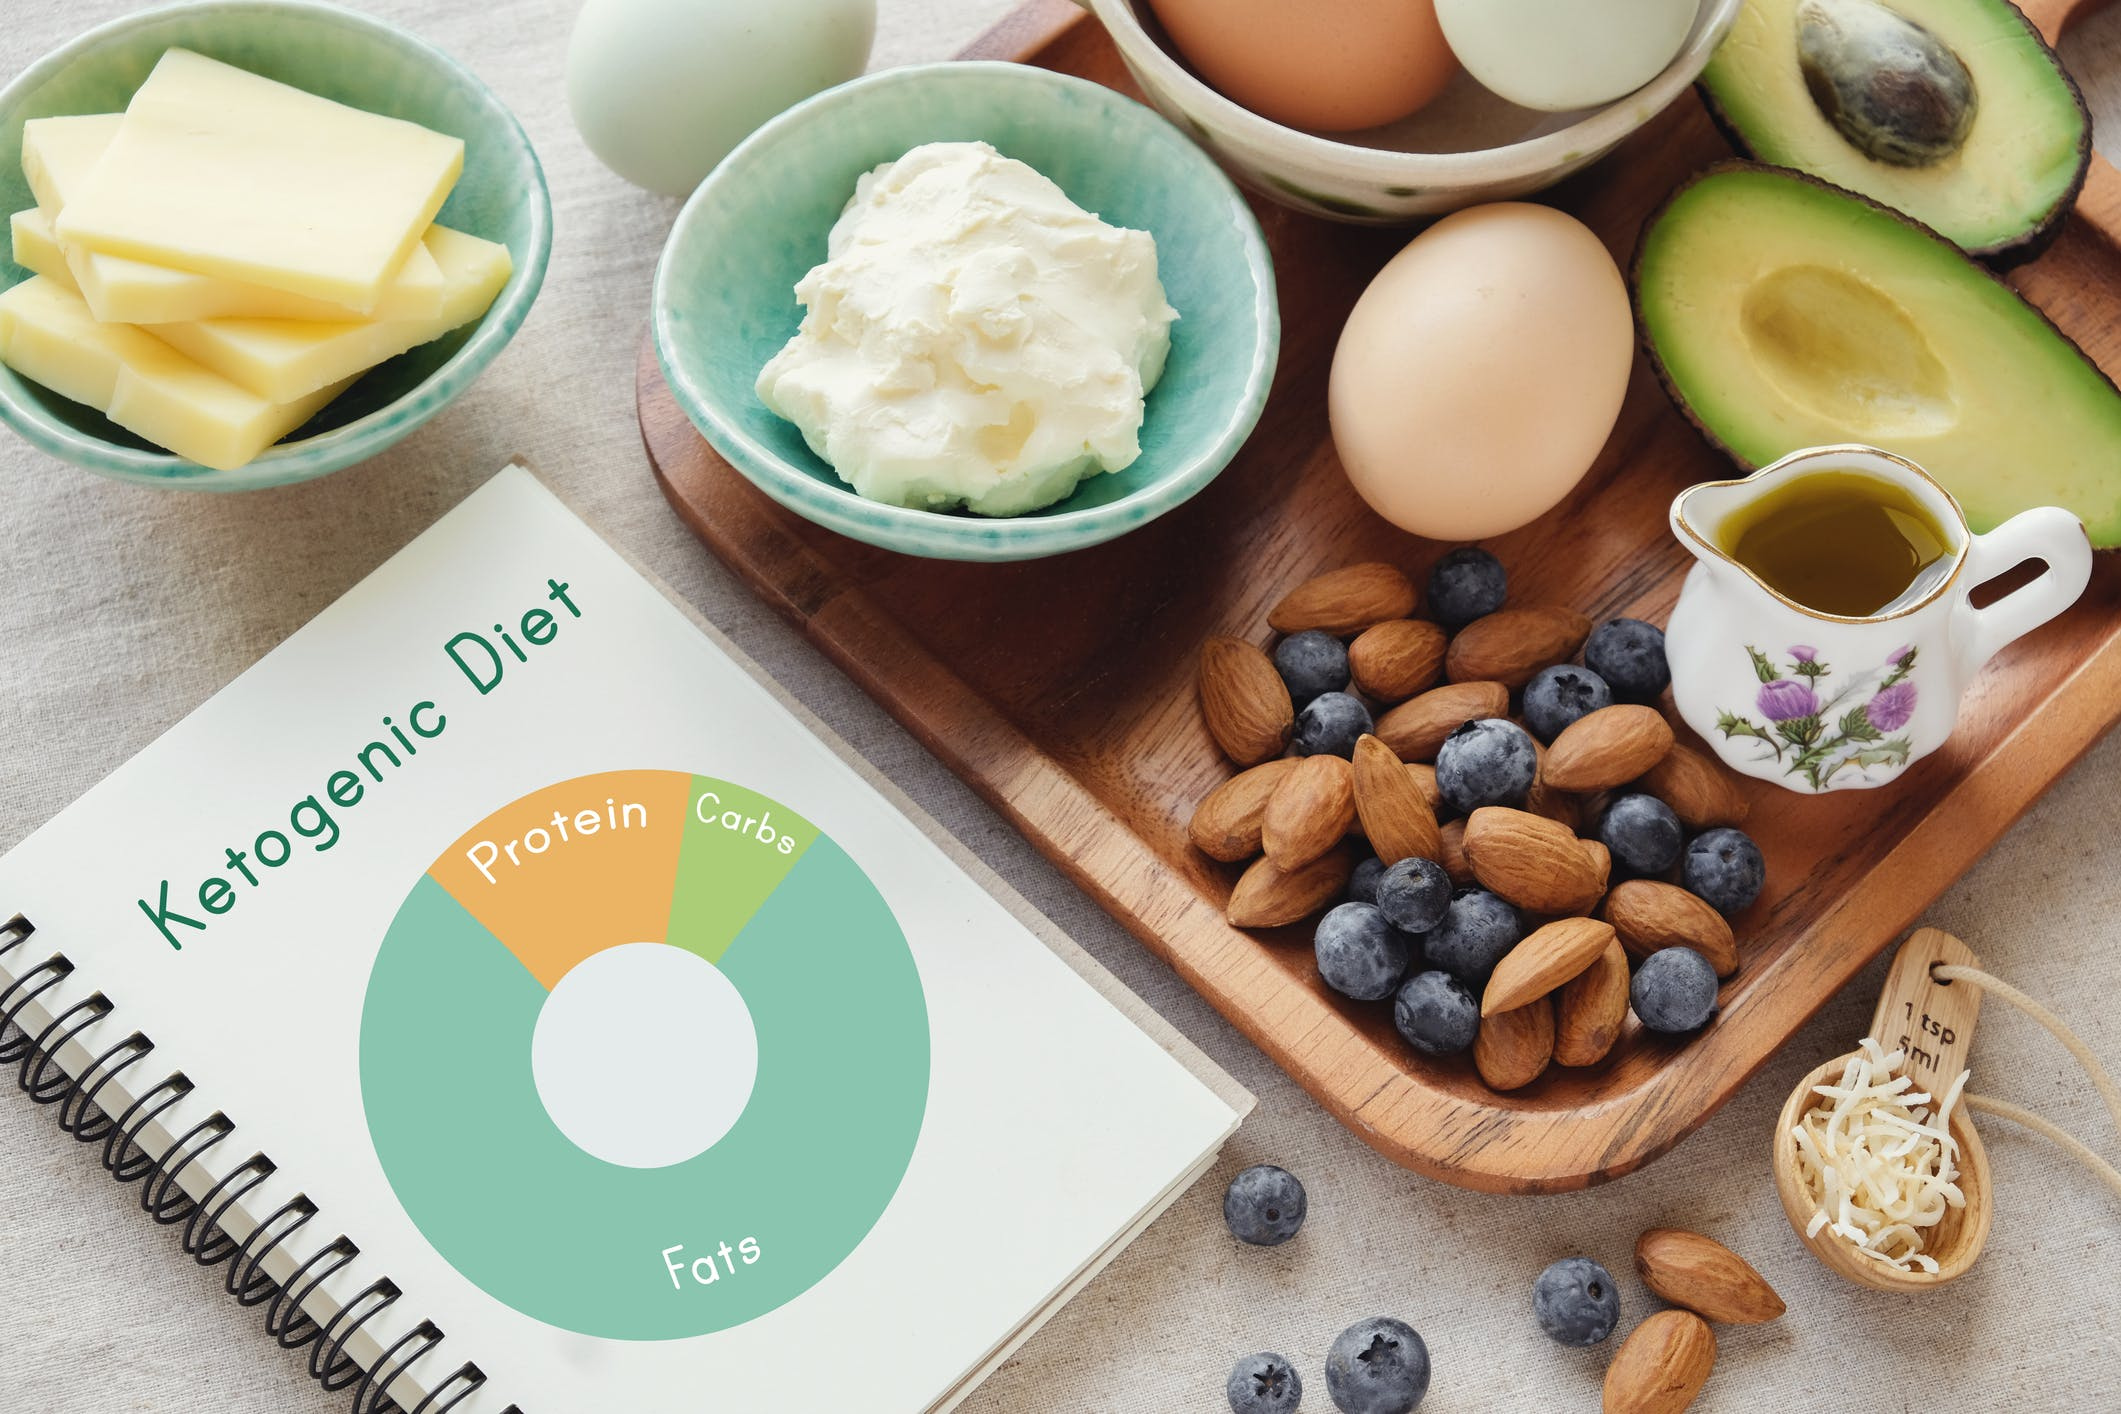 Ketogenic Diet: Is It Safe and Sustainable?